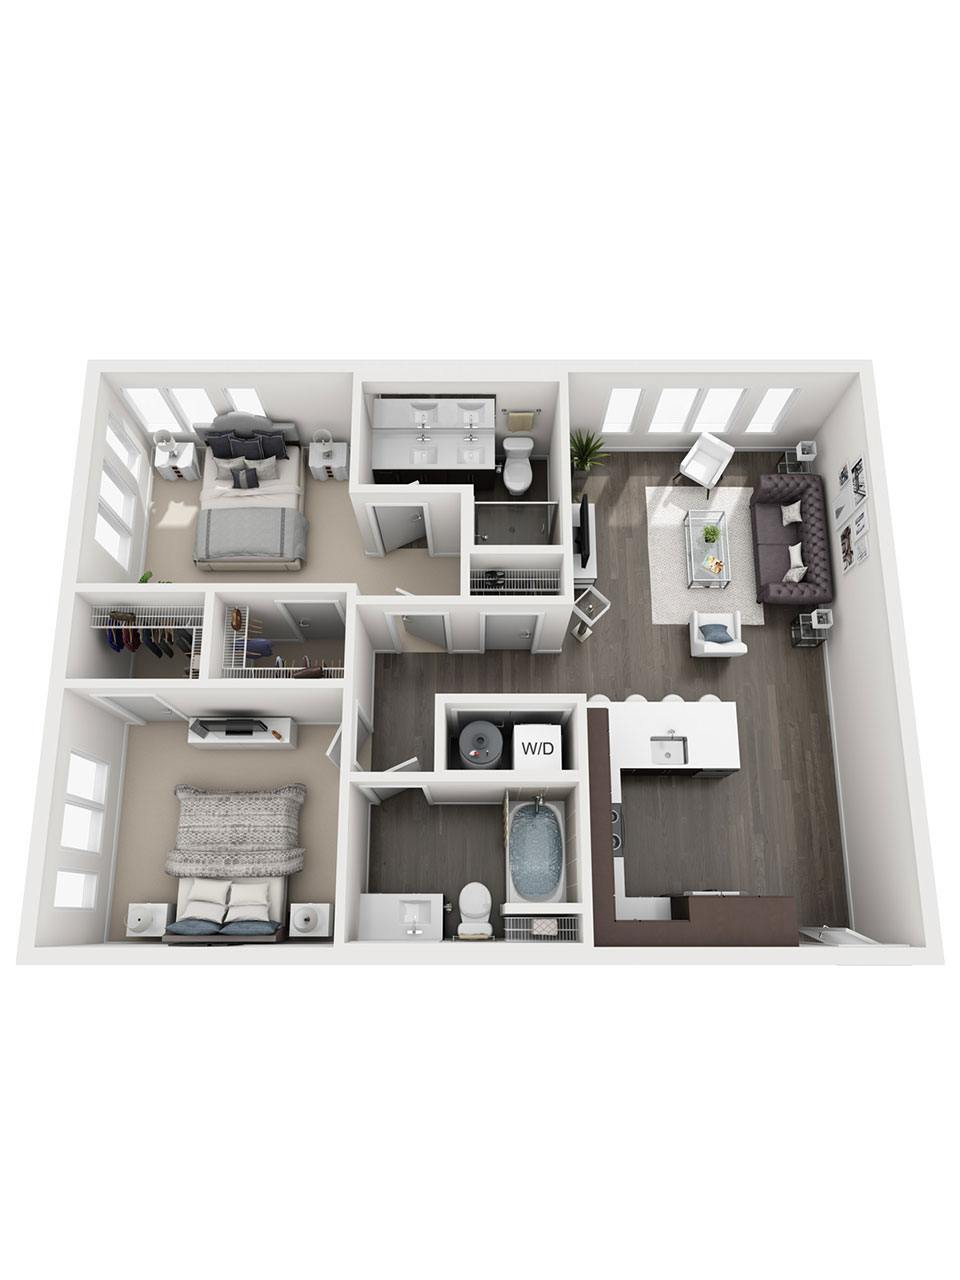 Plan 2 Bedroom – B3 | 2 Bath